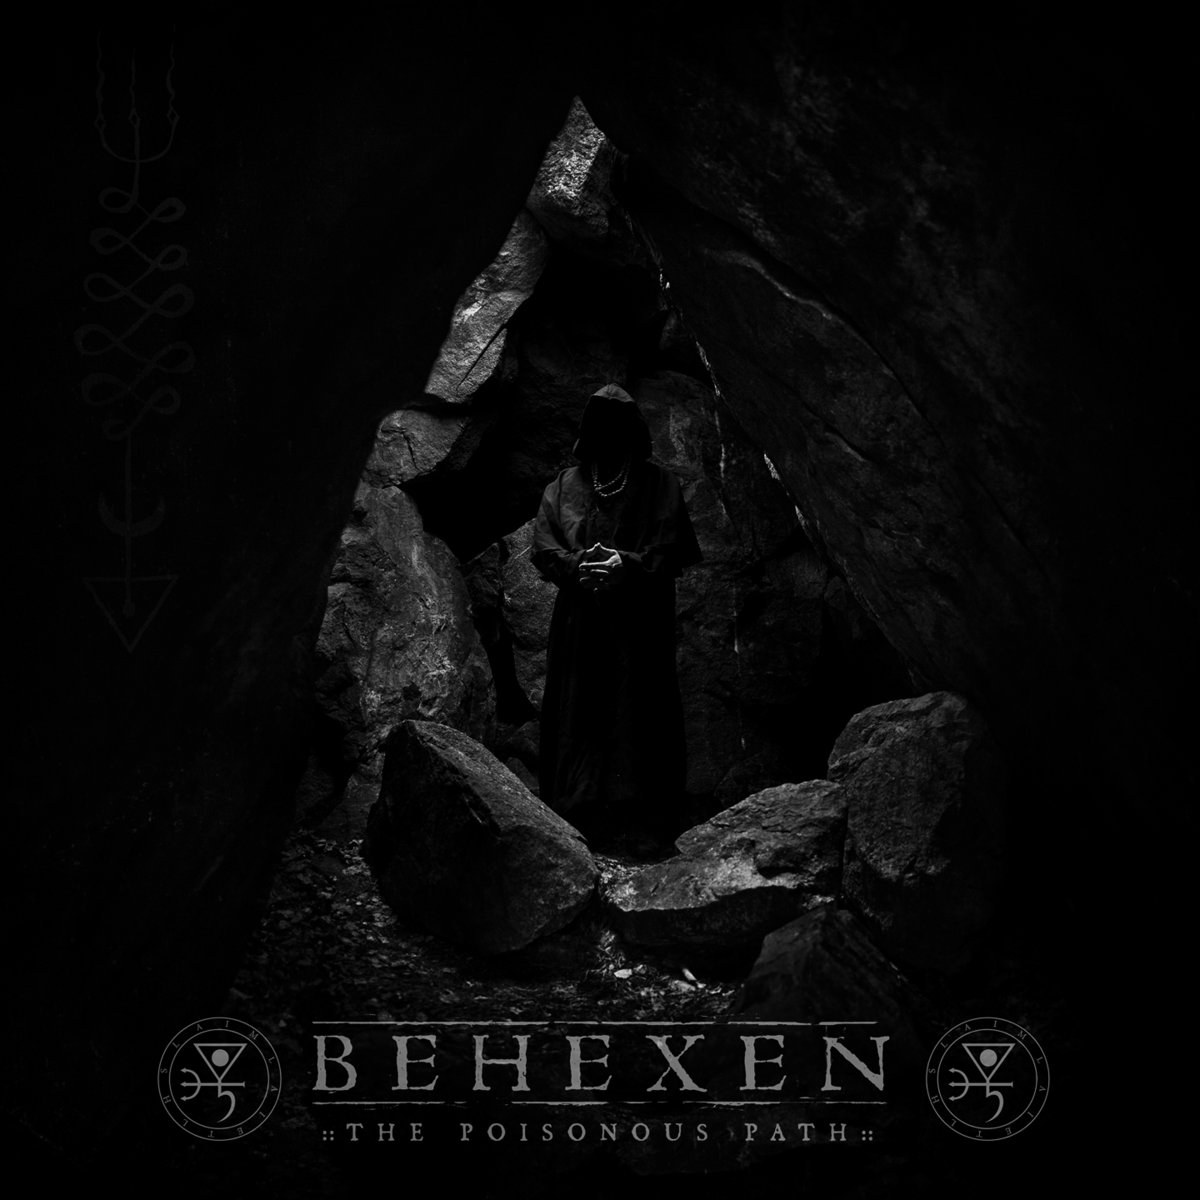 Review for Behexen - The Poisonous Path